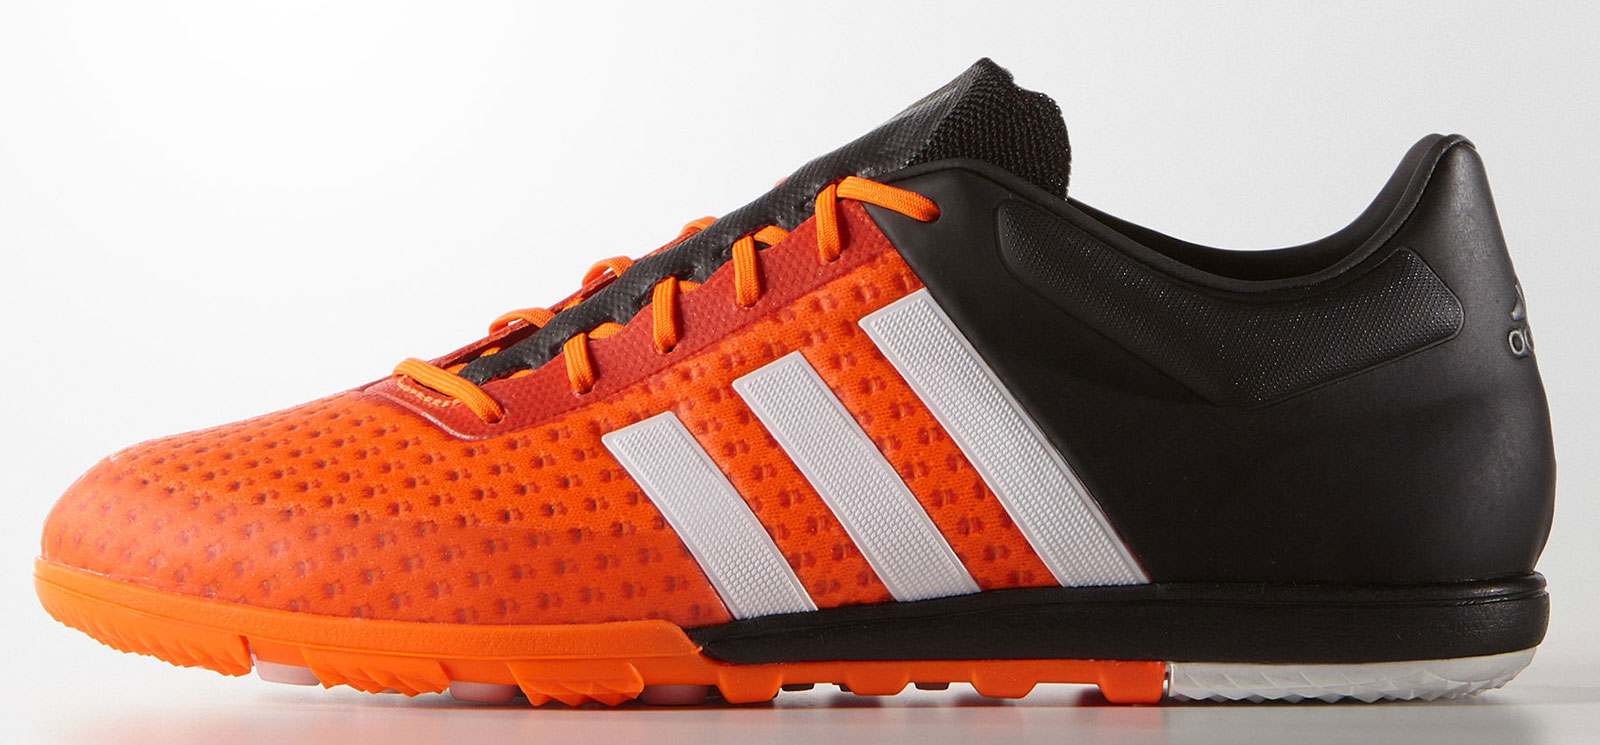 adidas ace 15 prime cage shoes released